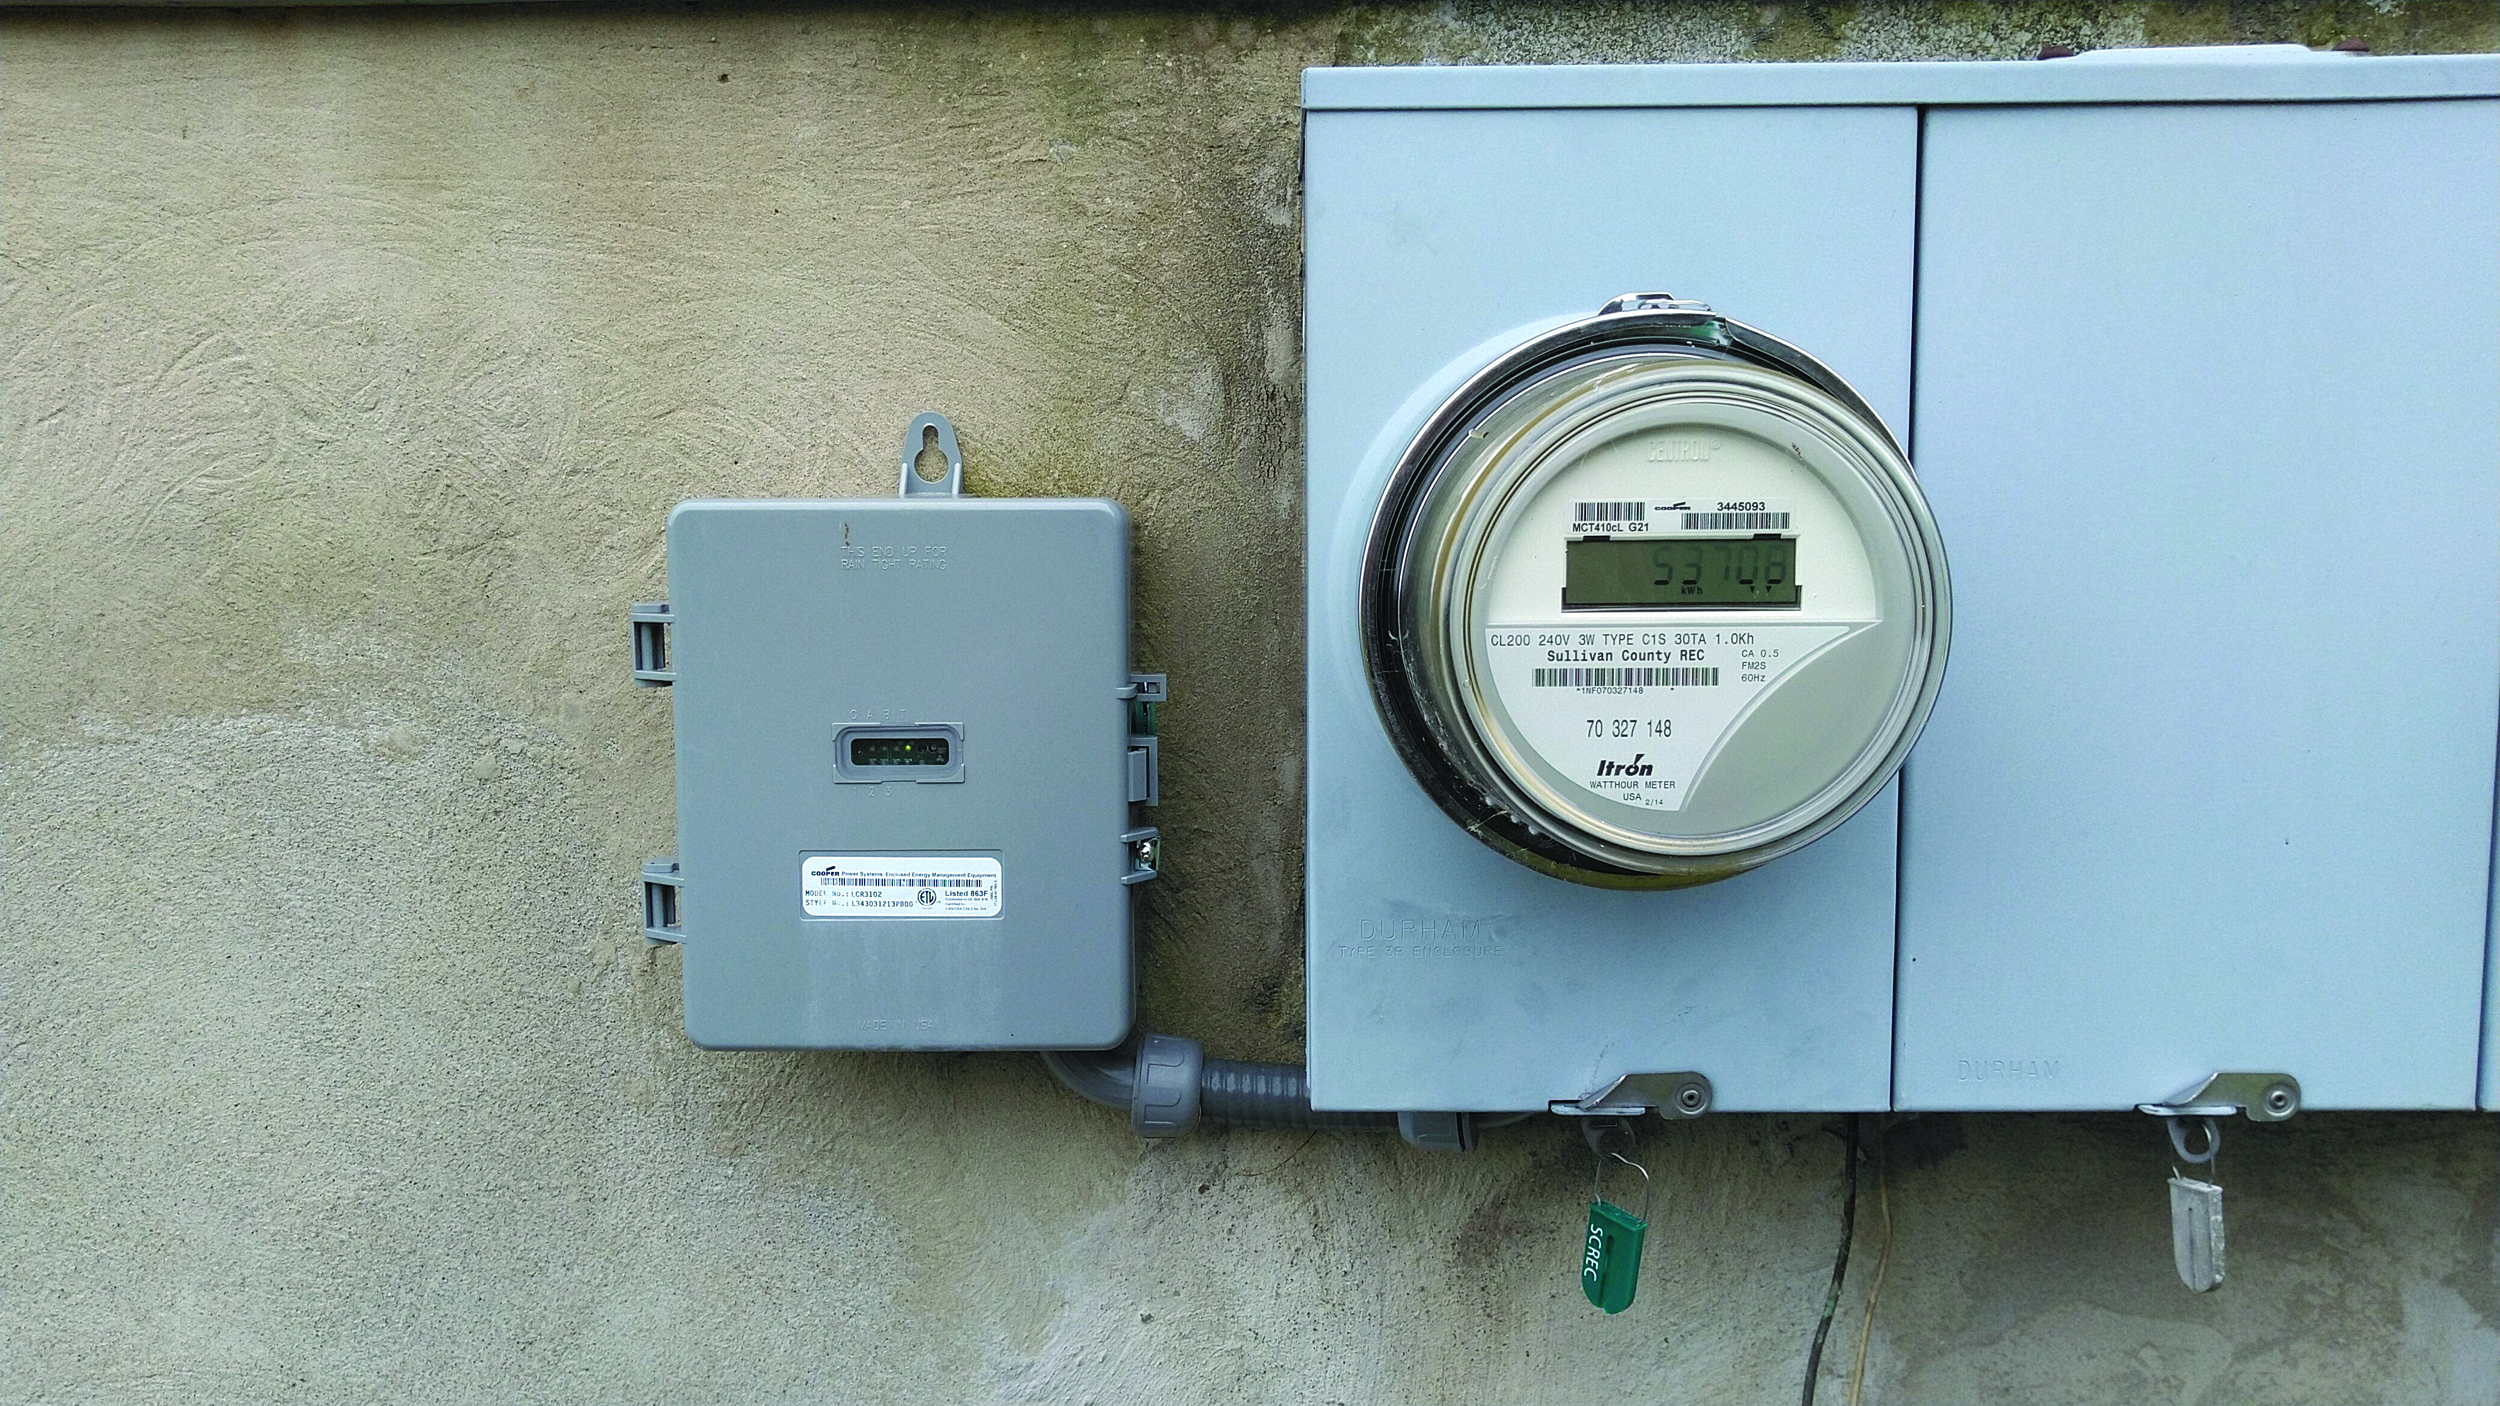 An electric meter attached to the home of a Sullivan County REC member monitors energy use of an electric thermal storage system.